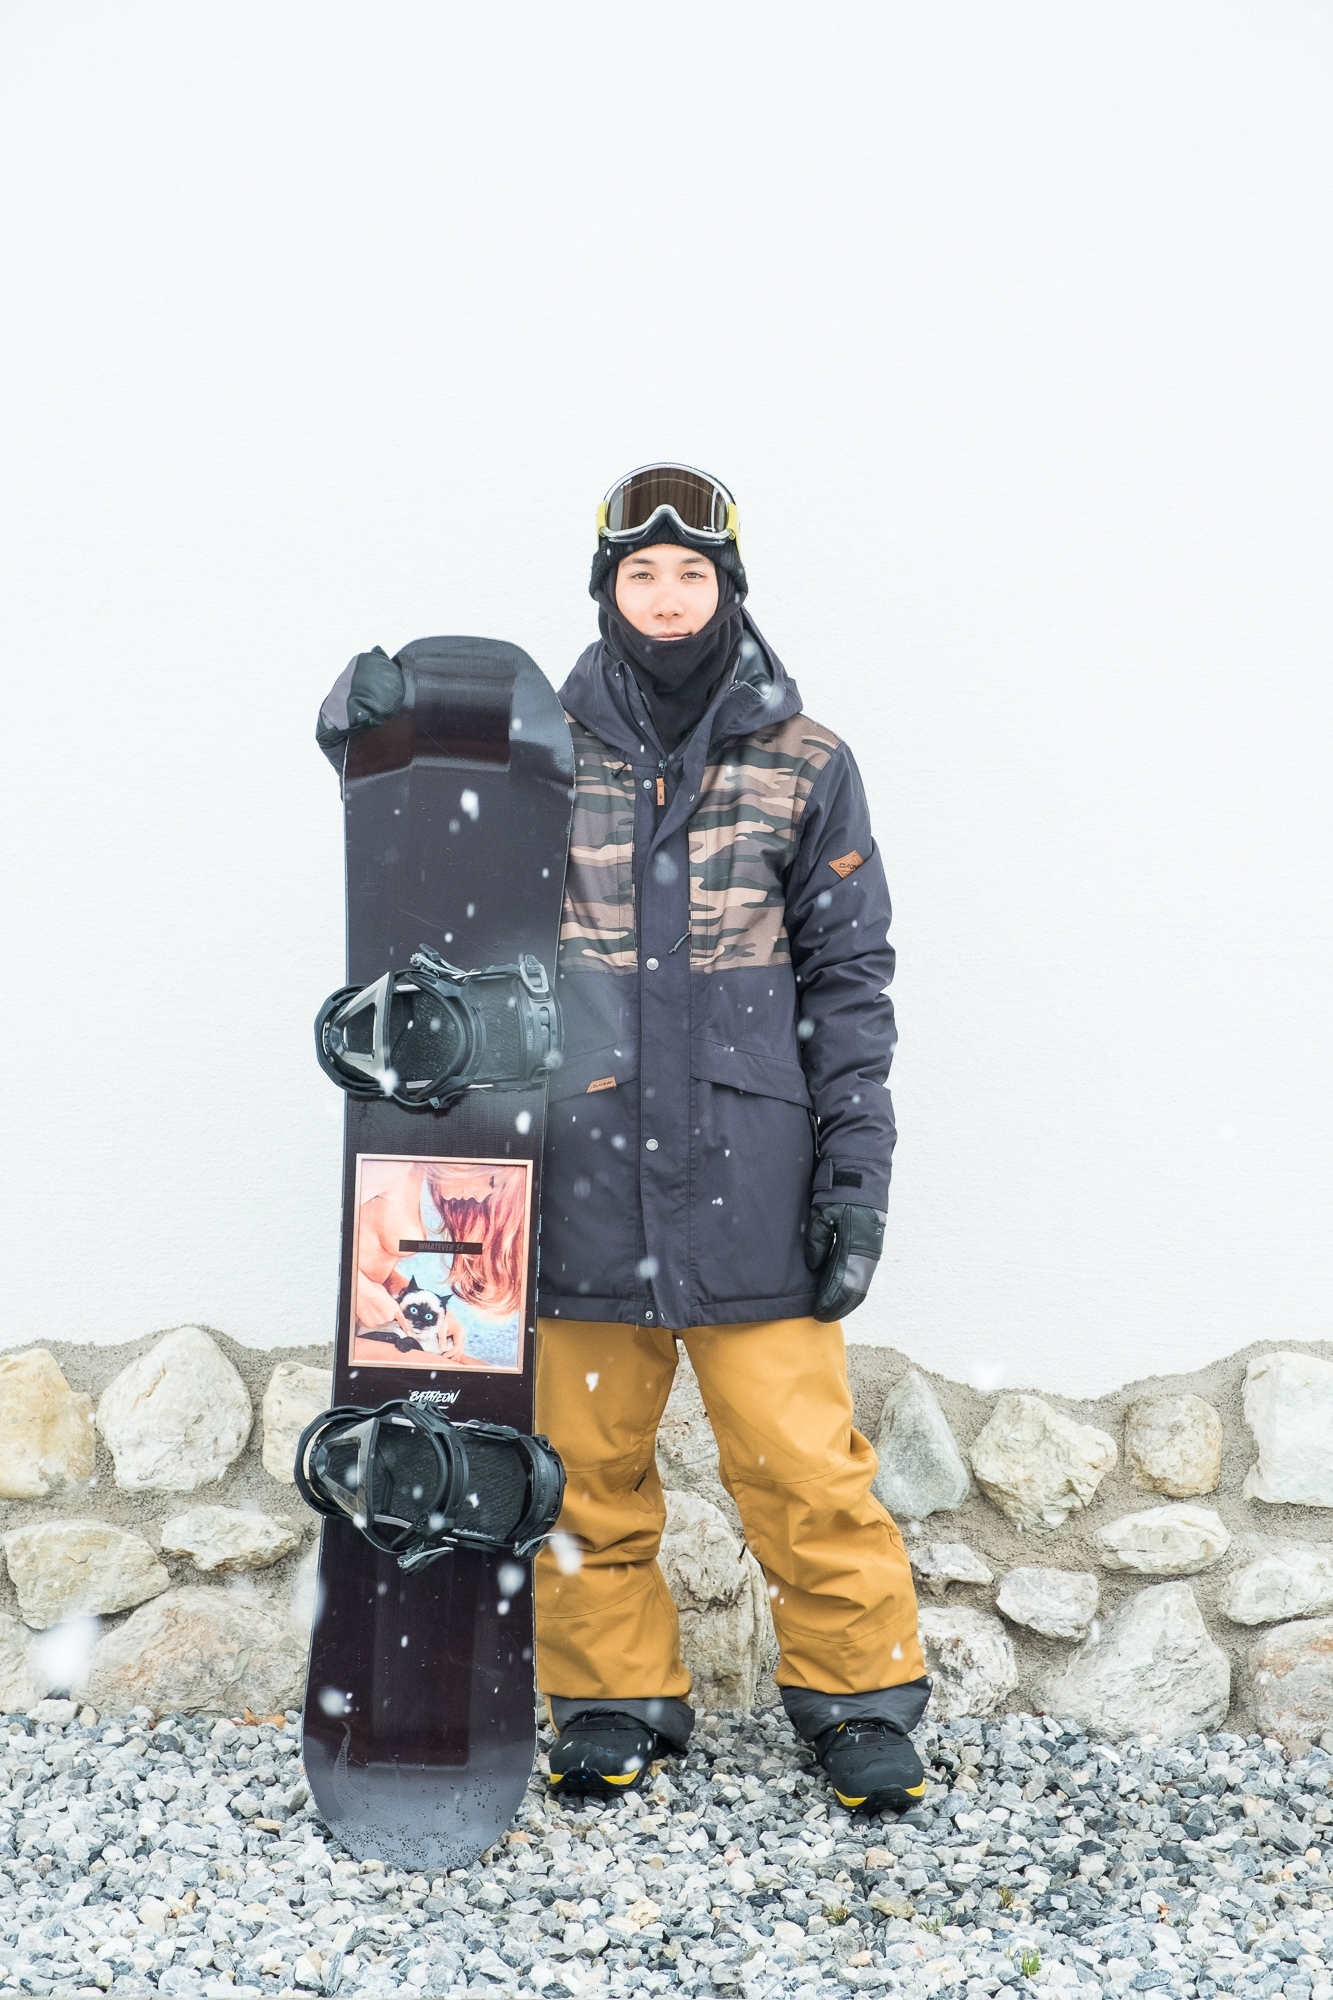 Method Mag The 2019 Bataleon Whatever Board